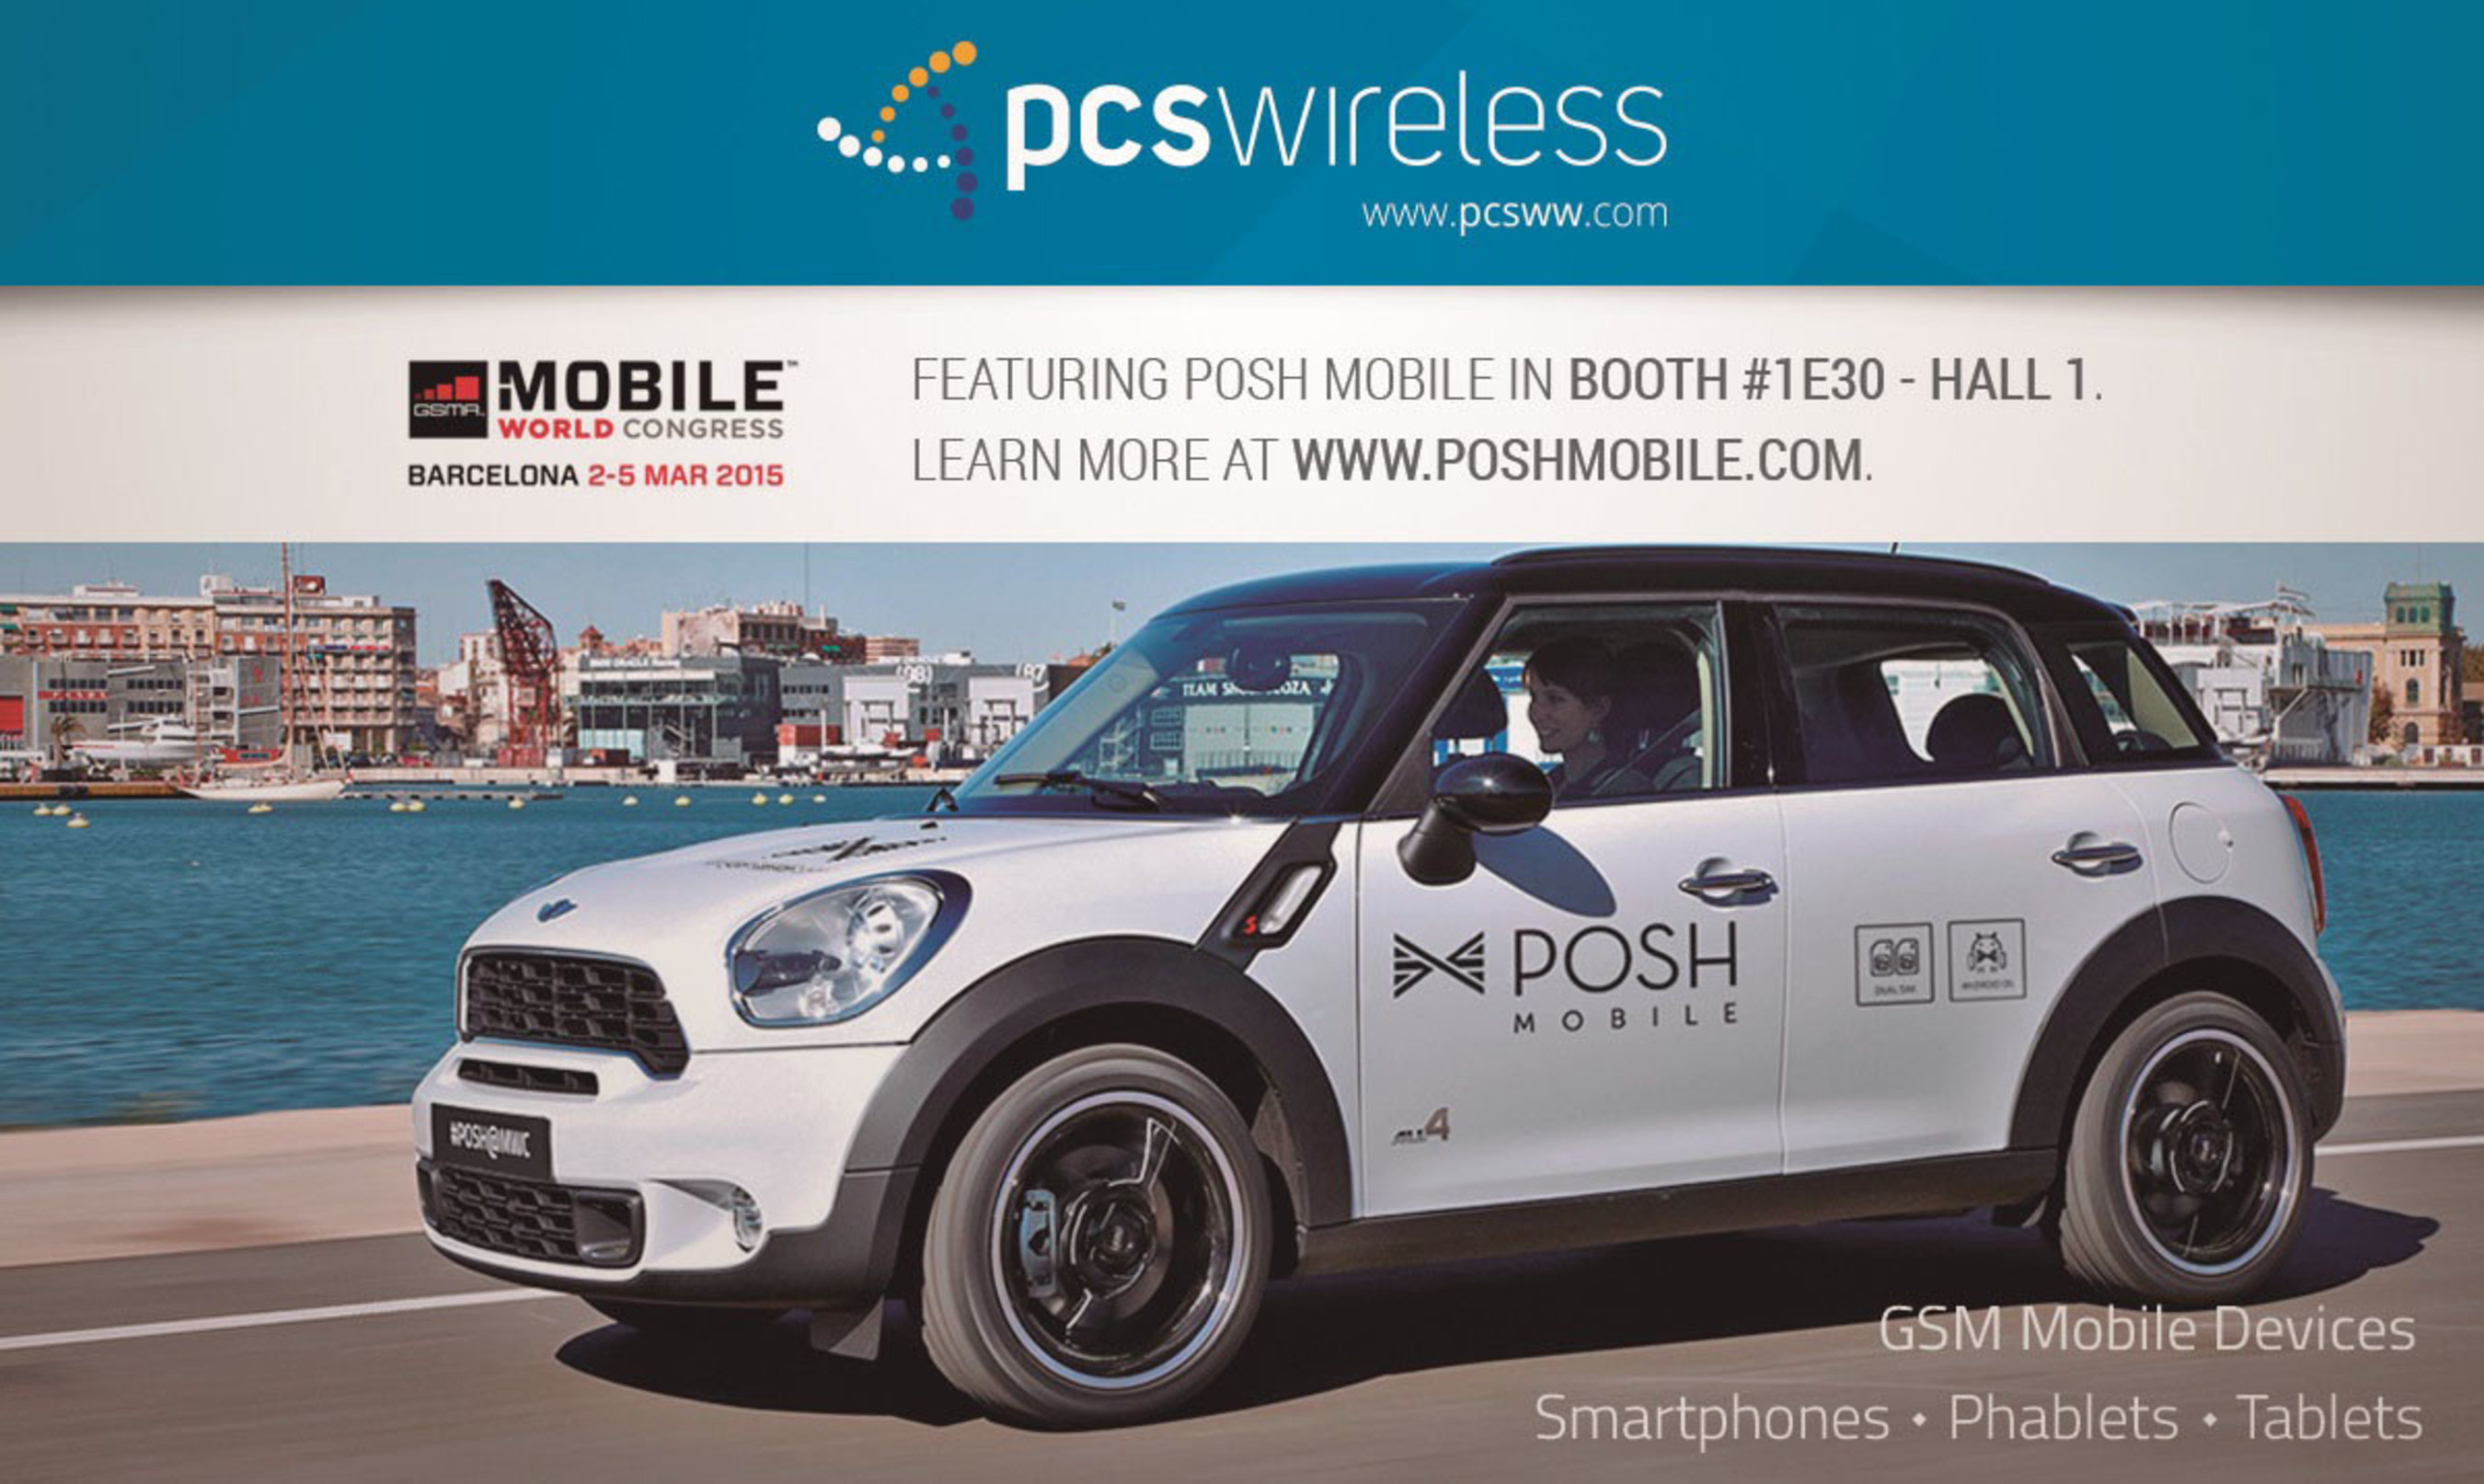 PCS Wireless Showcases New Posh Mobile Android Devices, Live Overstock Wireless Auction Site and Asset Recovery Solutions at MWC15